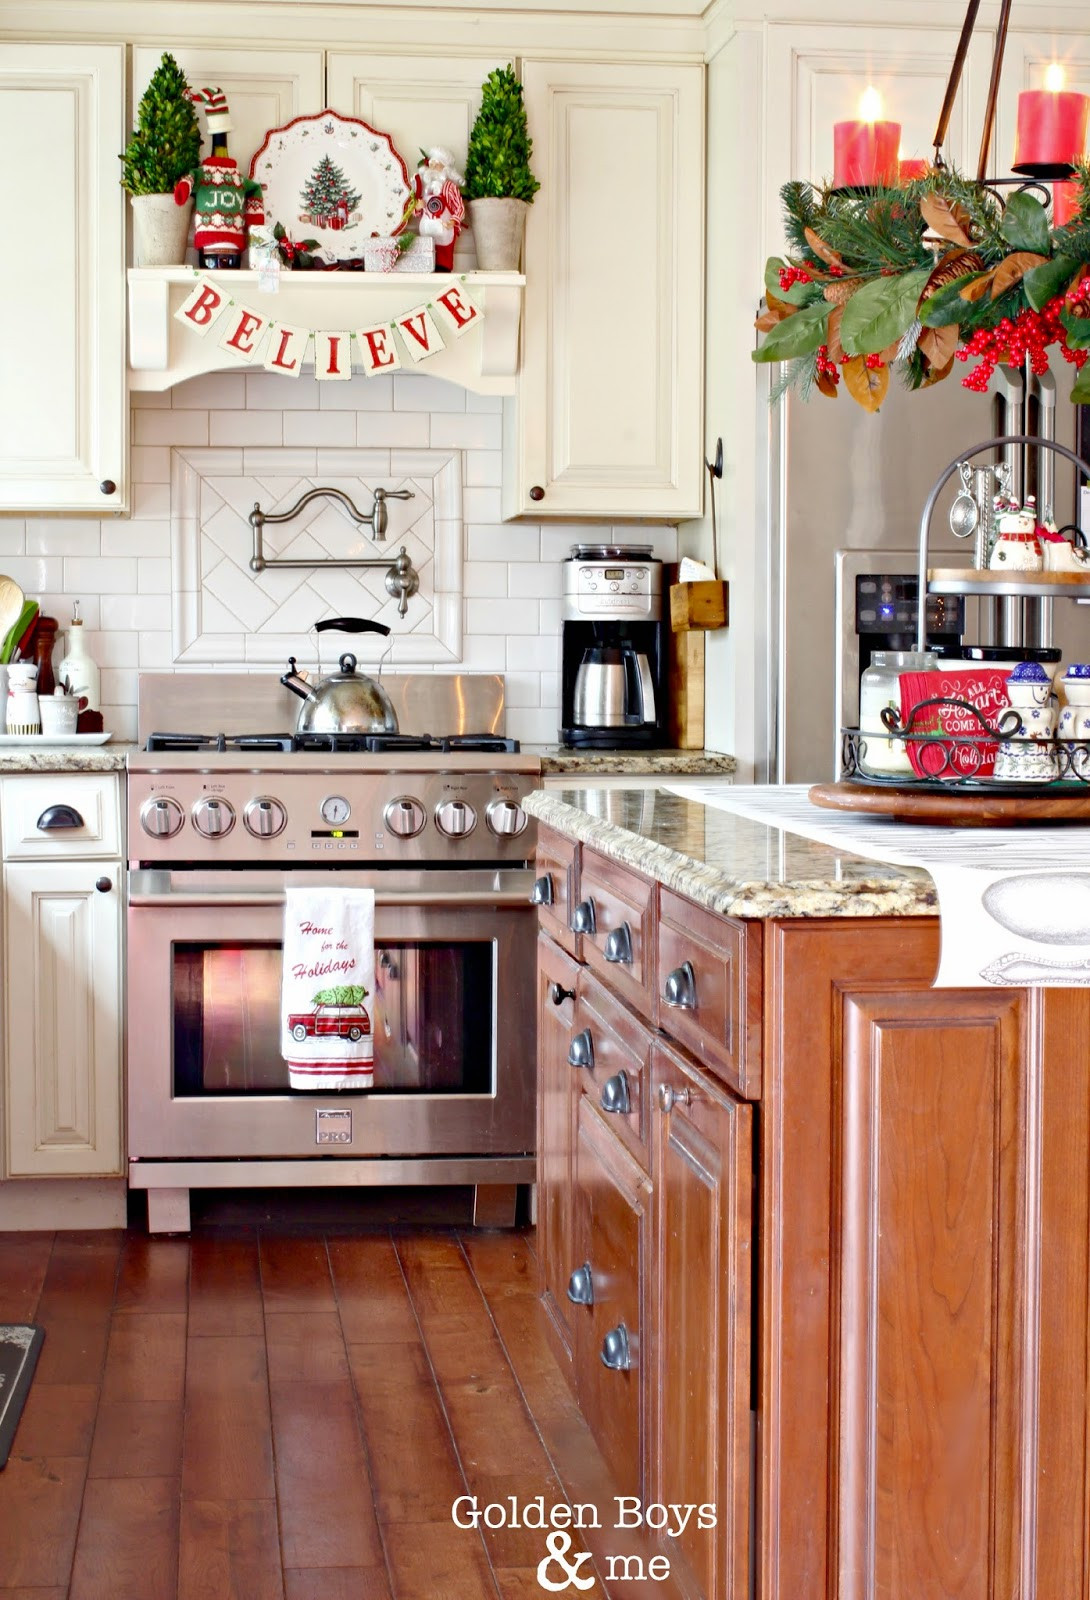 Best ideas about Kitchen Decorating Accessories . Save or Pin Golden Boys and Me Christmas in the Kitchen Now.